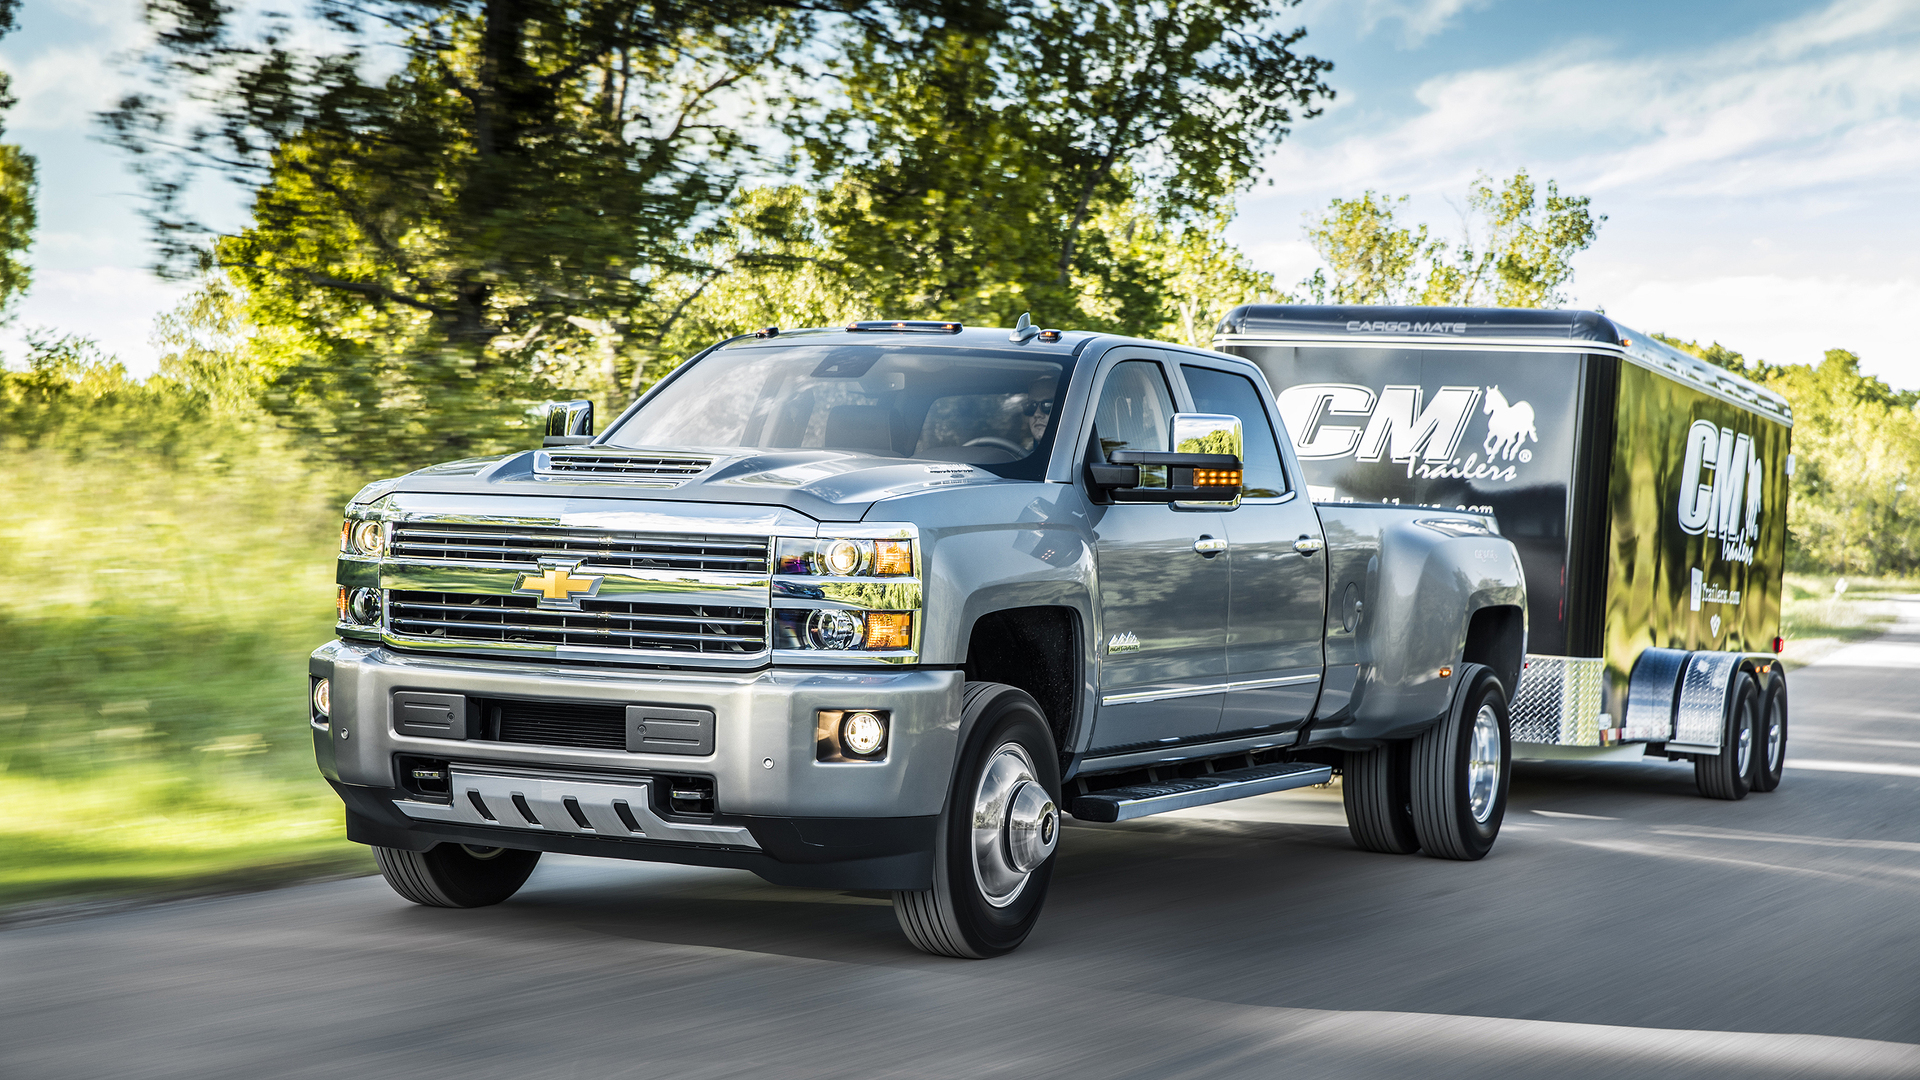 2017 Chevy Silverado HD gets new Duramax V8 with 910 lb-ft